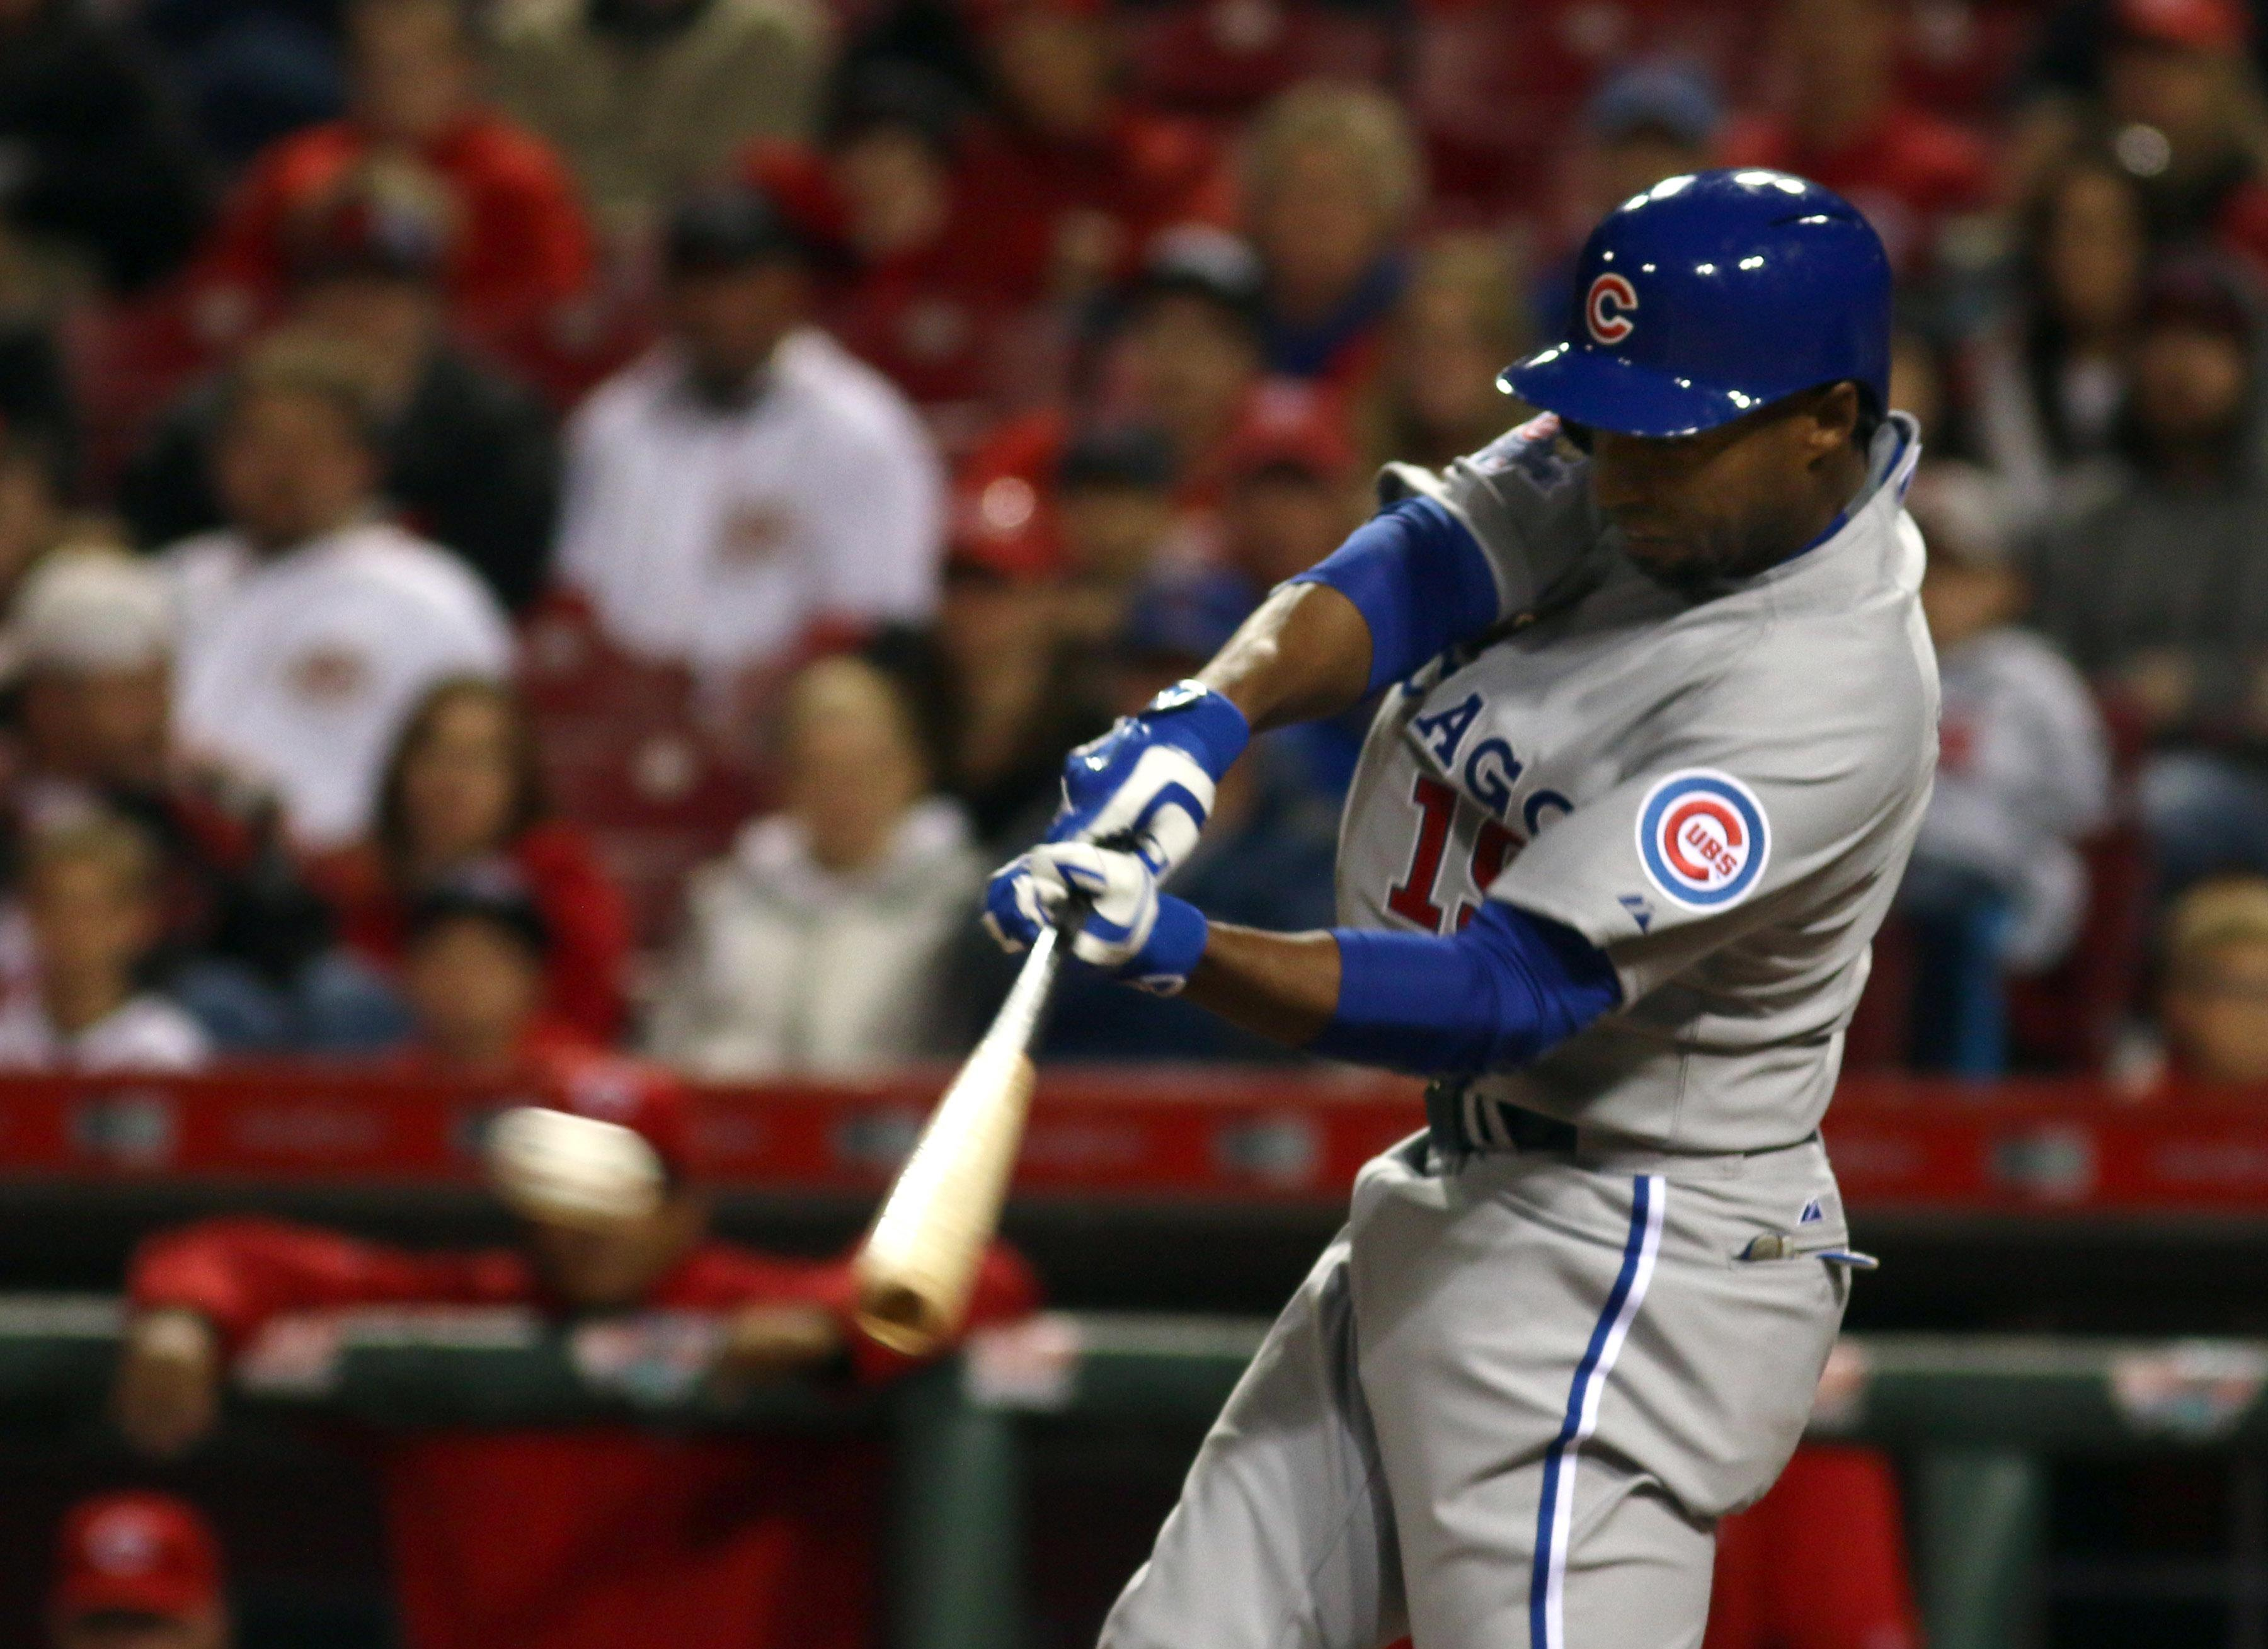 Cubs score 4 times in 11th for 7-3 win over Reds